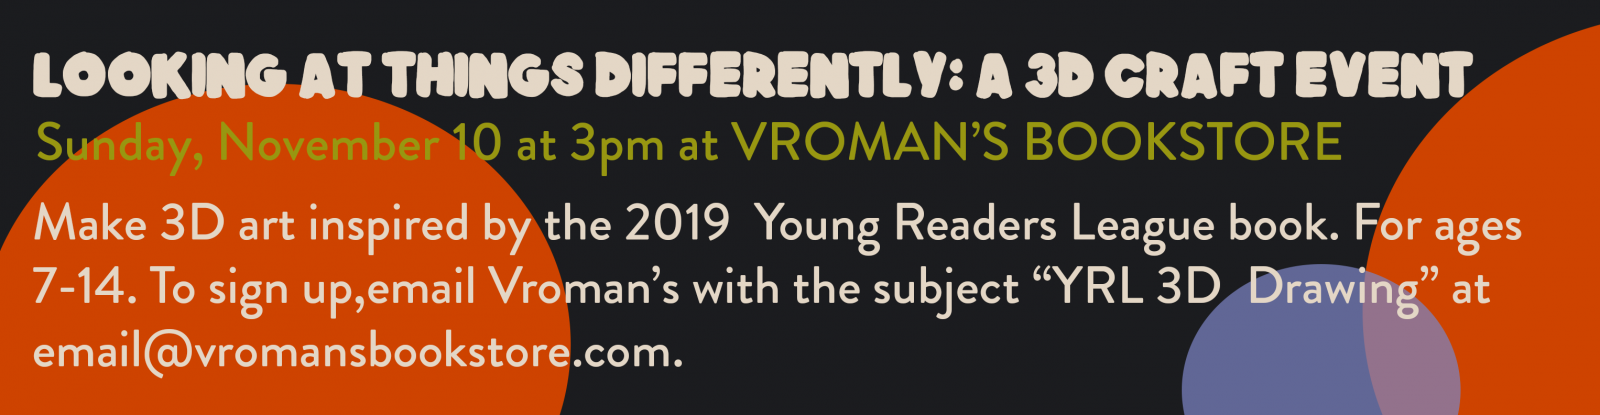 "Photo of text that reads ""Looking at things Differently: a 3D craft Event. Sunday, November 10th at 3PM at Vroman's Bookstore. Make 3D art inspired by the 2019 Young Reader's League book. For ages 7-14. To sign up, email Vroman's with the subject ""YRL 3D Drawing"" at email@vromansbookstore.com ."""